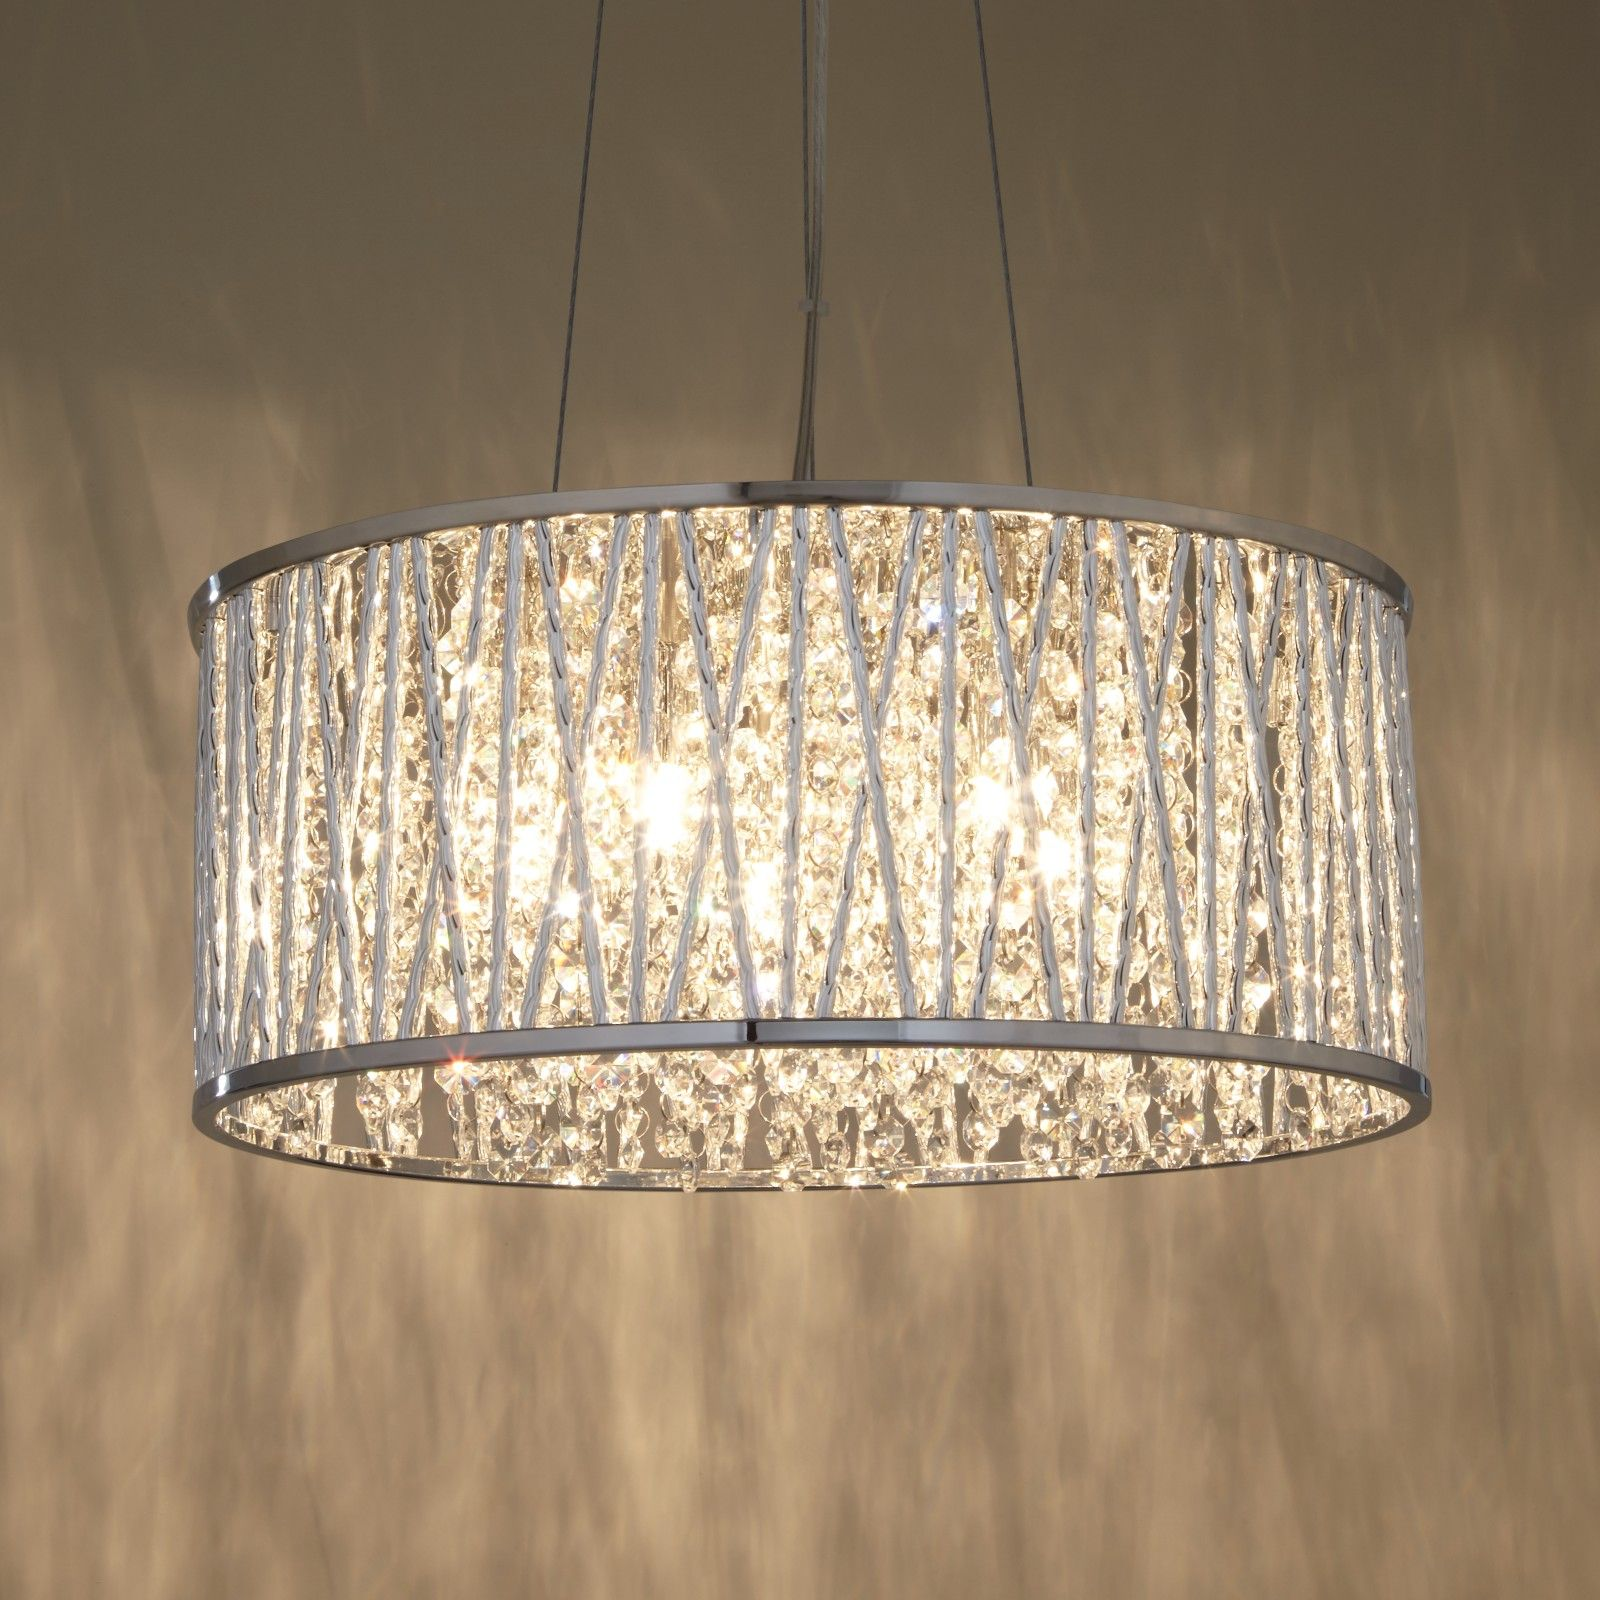 John lewis emilia drum crystal pendant light crystal pendant buy john lewis emilia drum crystal pendant light online at johnlewis 27000 mozeypictures Image collections